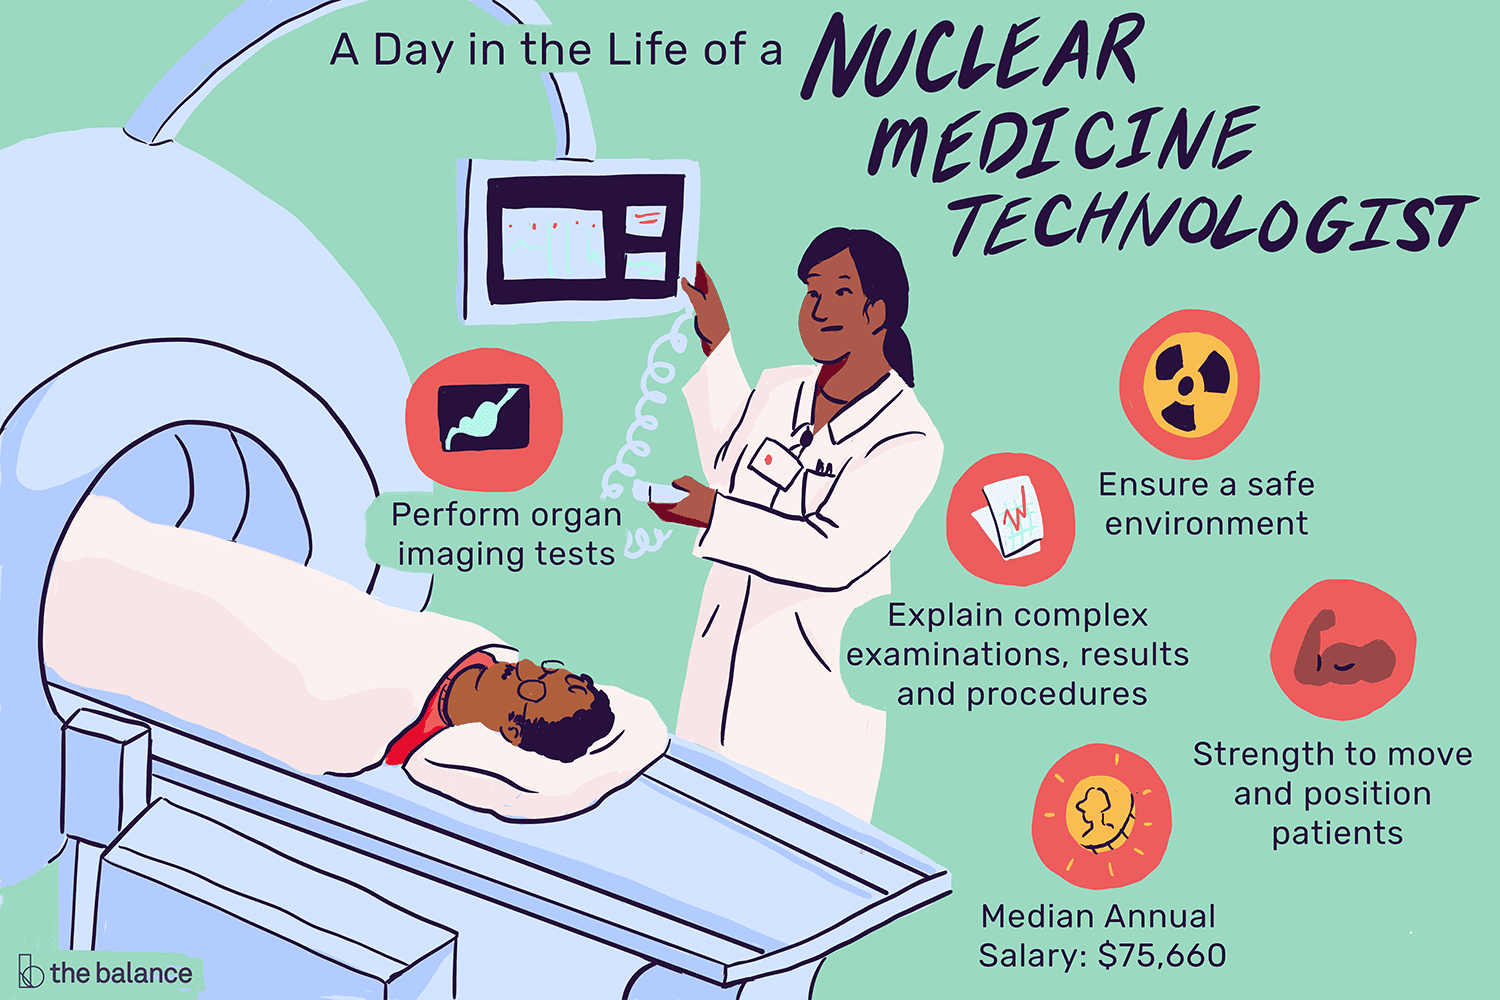 Nuclear Medicine Technologist Job Description Salary Skills More